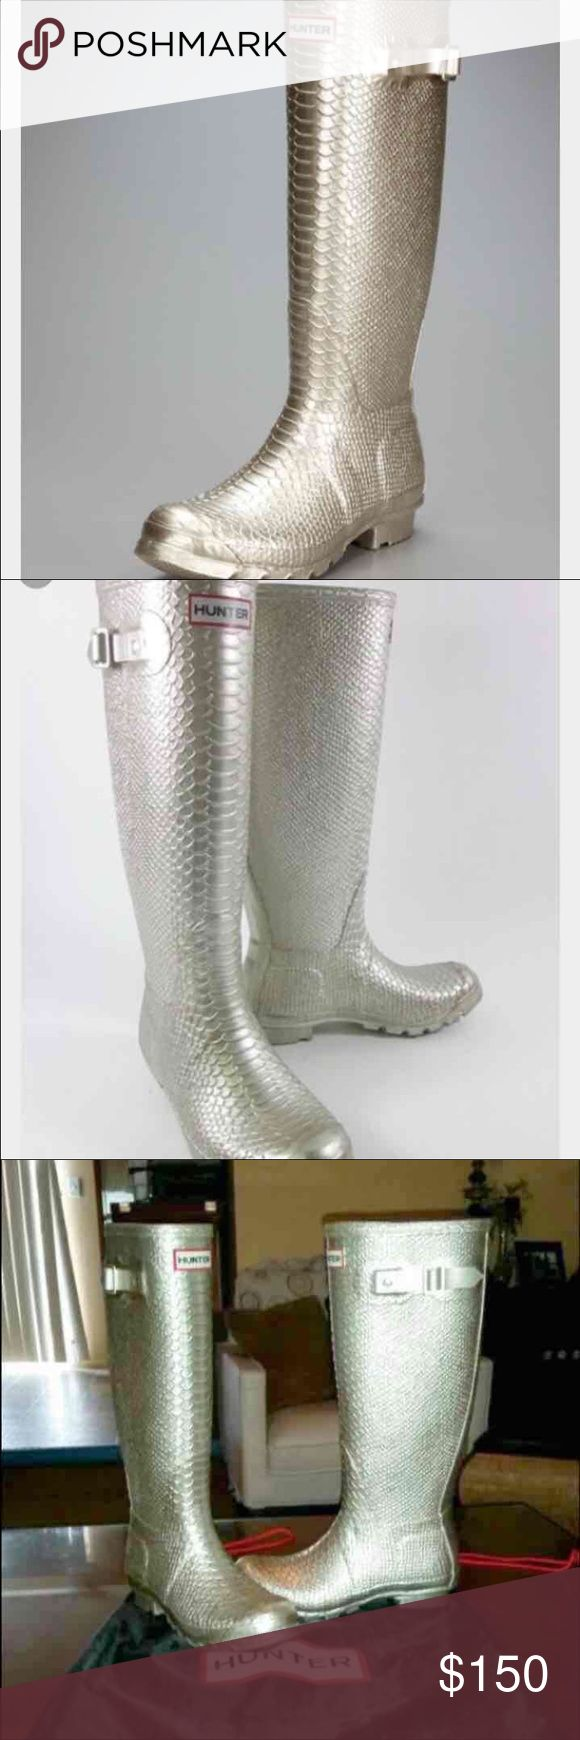 Hunter limited edition boa welly boots! Very rare! Only tried, size 6/7. Silver Hunter Boots Shoes Winter & Rain Boots